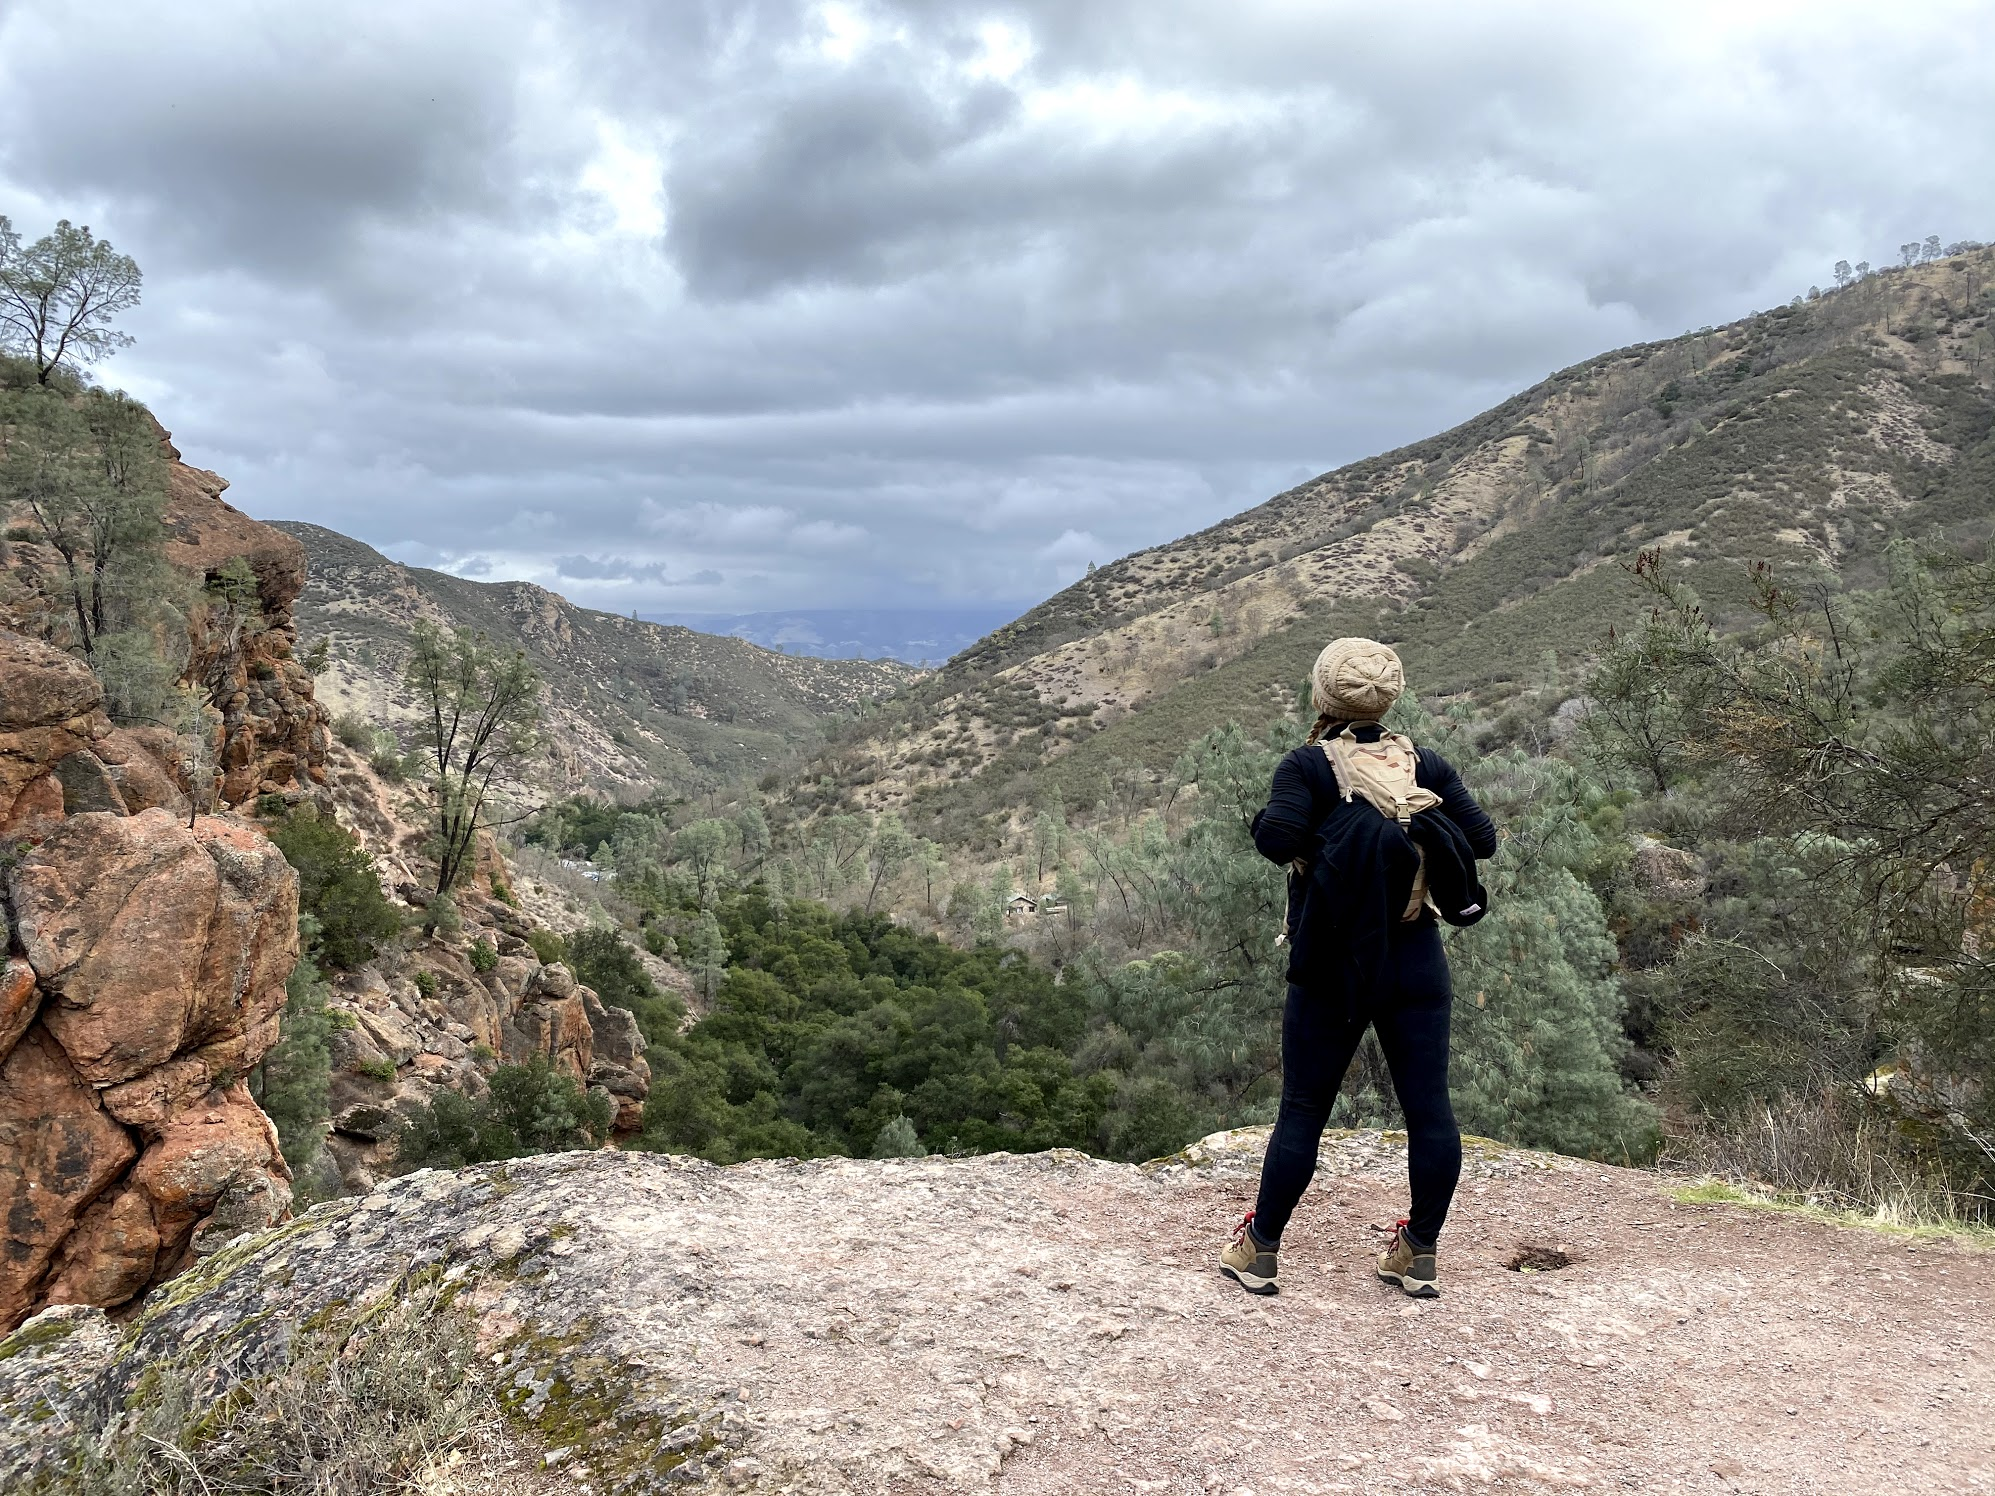 ADDRESSING THE TOP 5 FEARS OF SOLO FEMALE HIKING